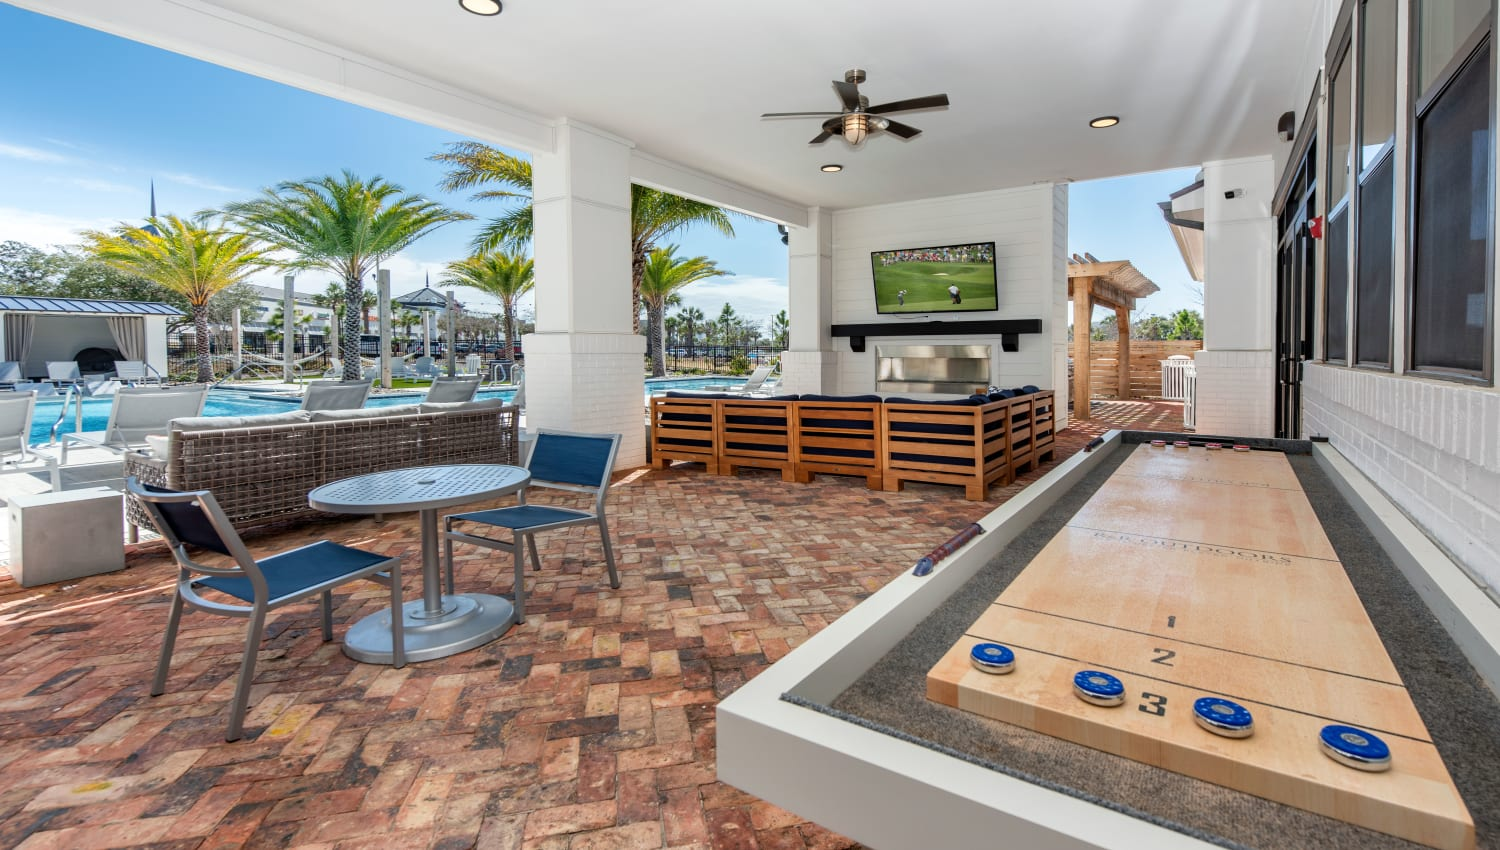 An outdoor covered game area at Olympus Emerald Coast in Destin, Florida